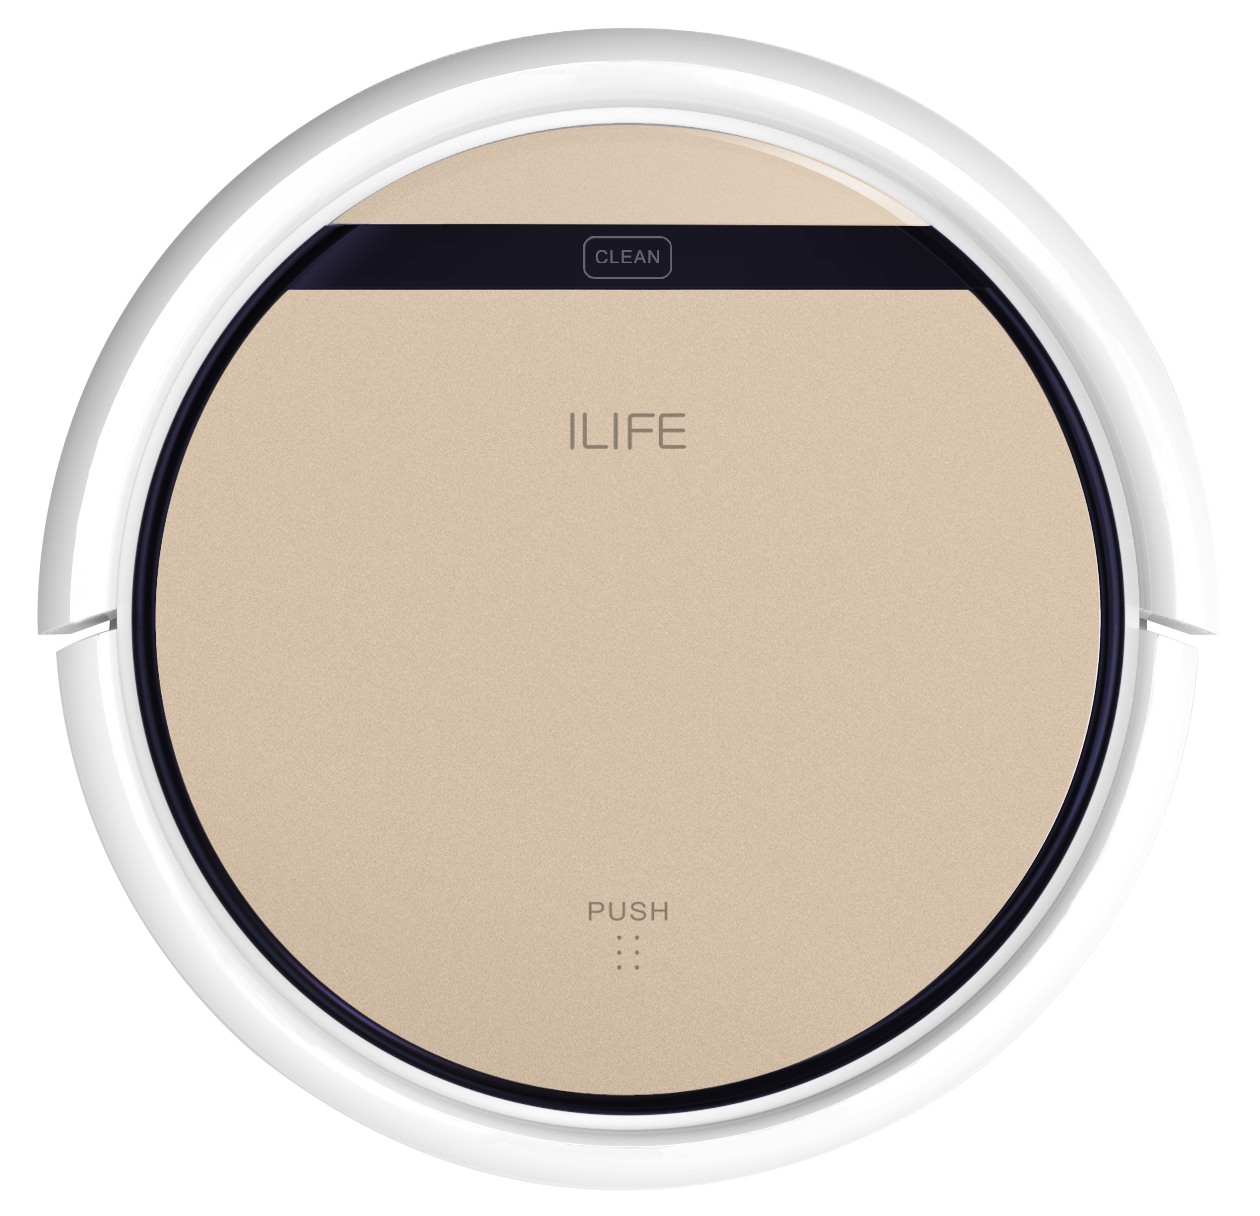 ILIFE V5s Pro Robot Vacuum and Mop 2 in 1 Cleaner with Water Tank, Self Charging Robotic Vacuum